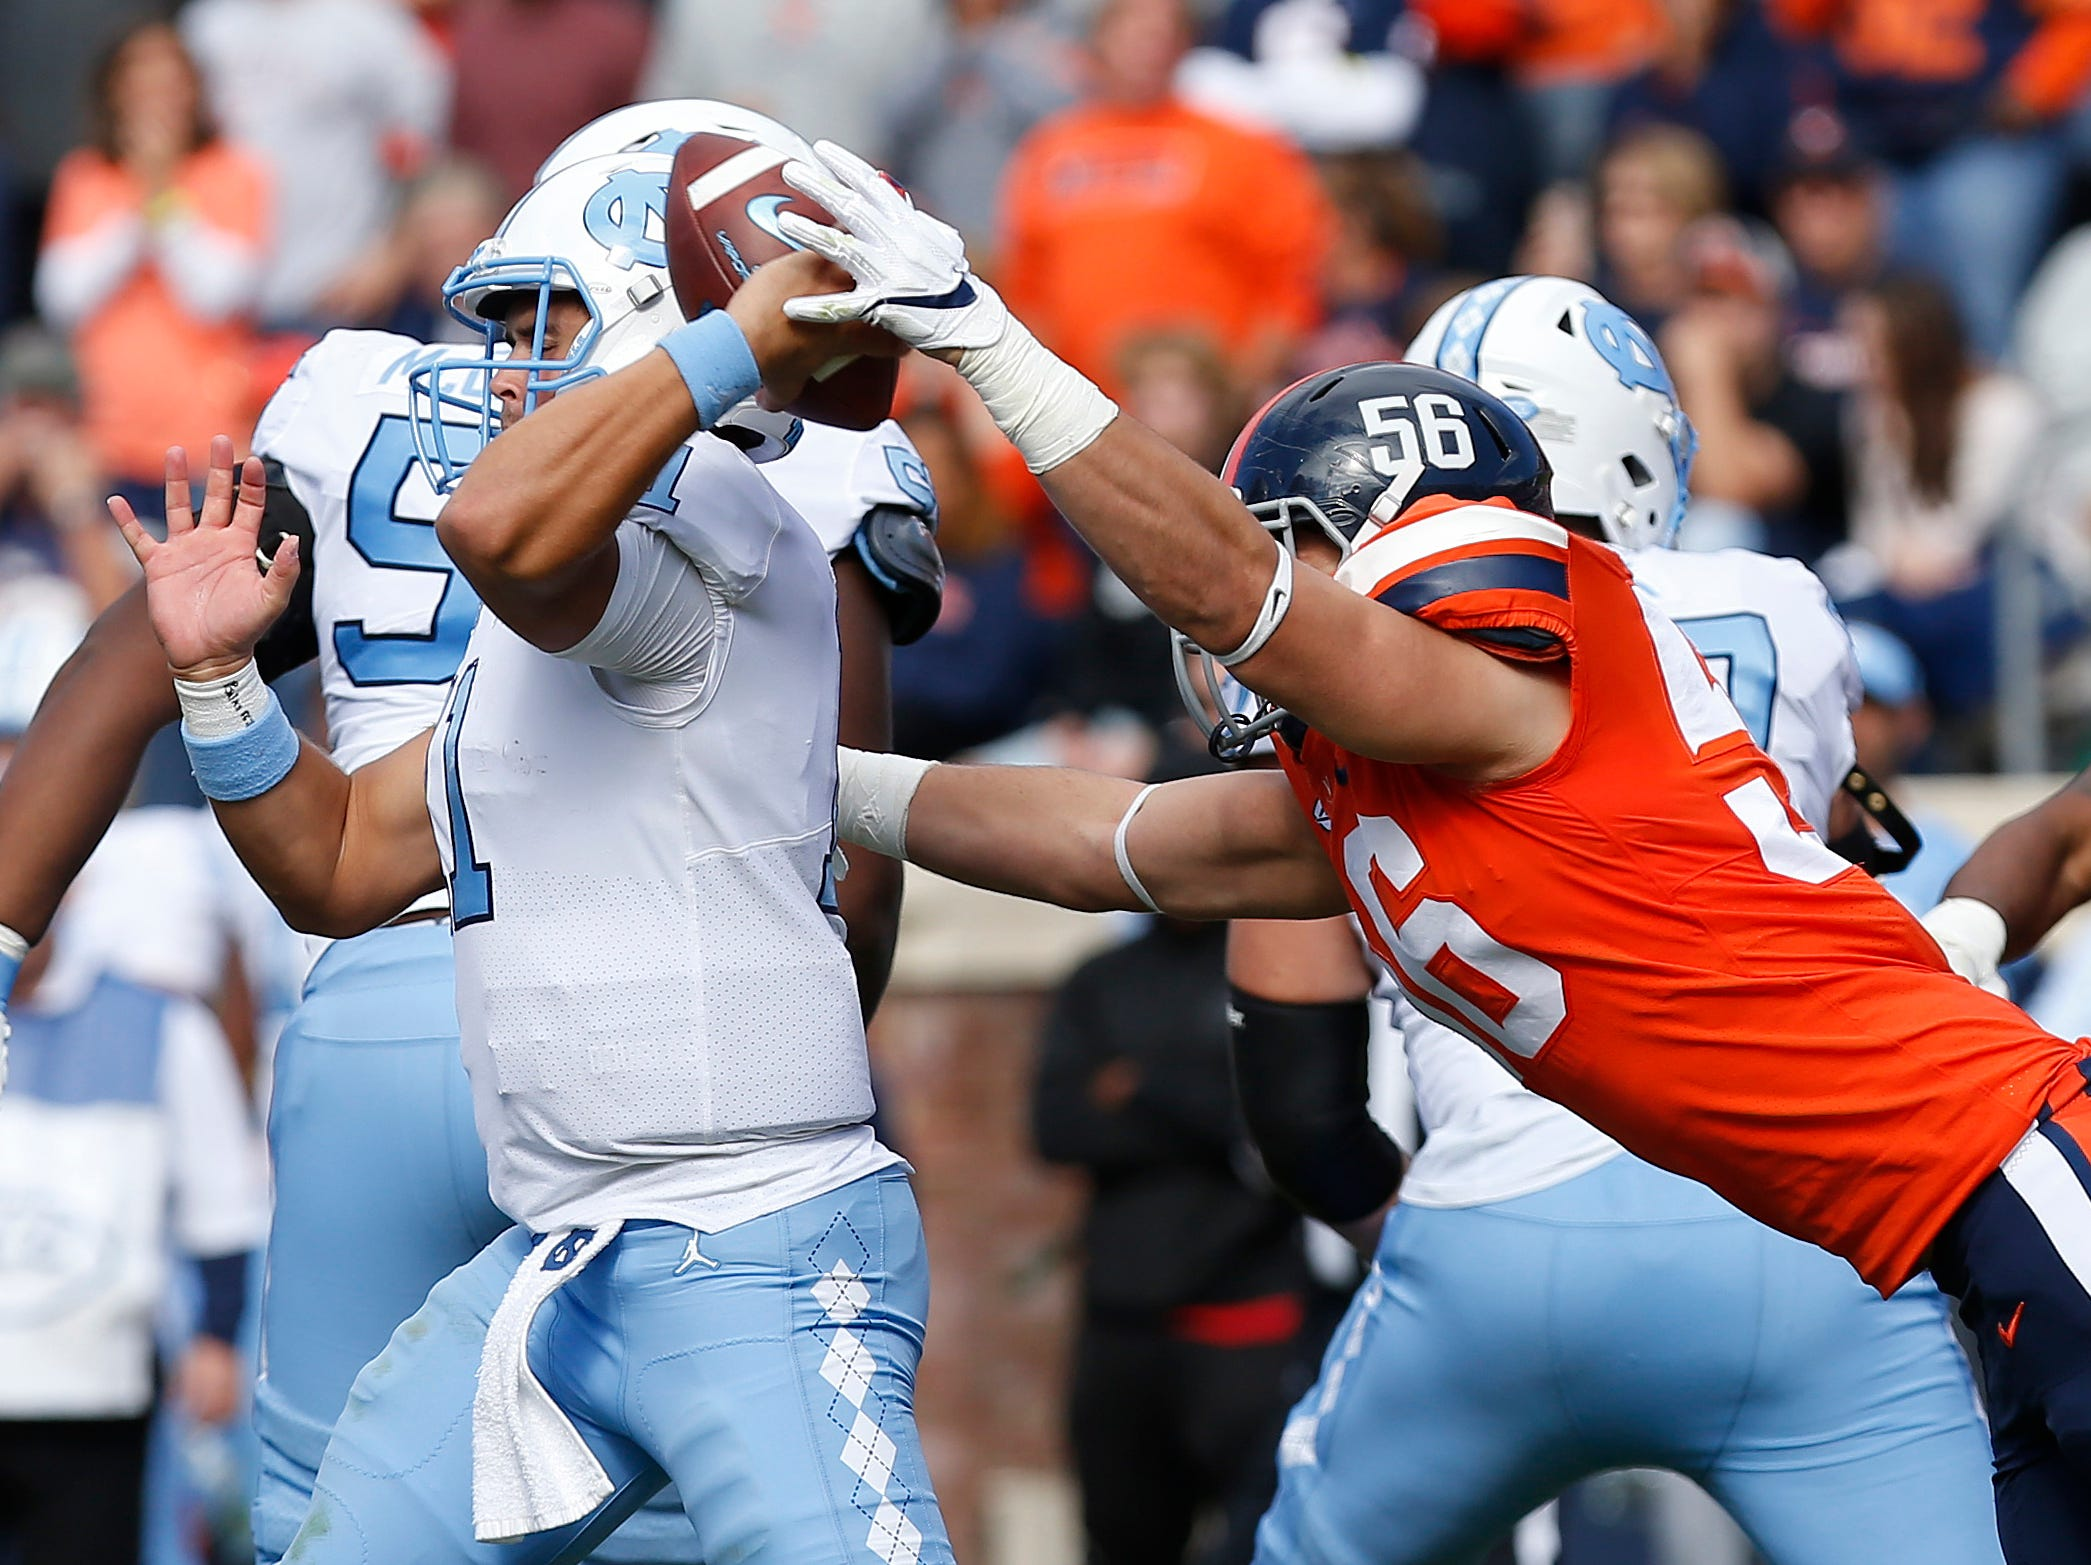 Virginia Cavaliers linebacker Matt Gahm (56) attempts to sack North Carolina Tar Heels quarterback Nathan Elliott (11) in the fourth quarter at Scott Stadium.